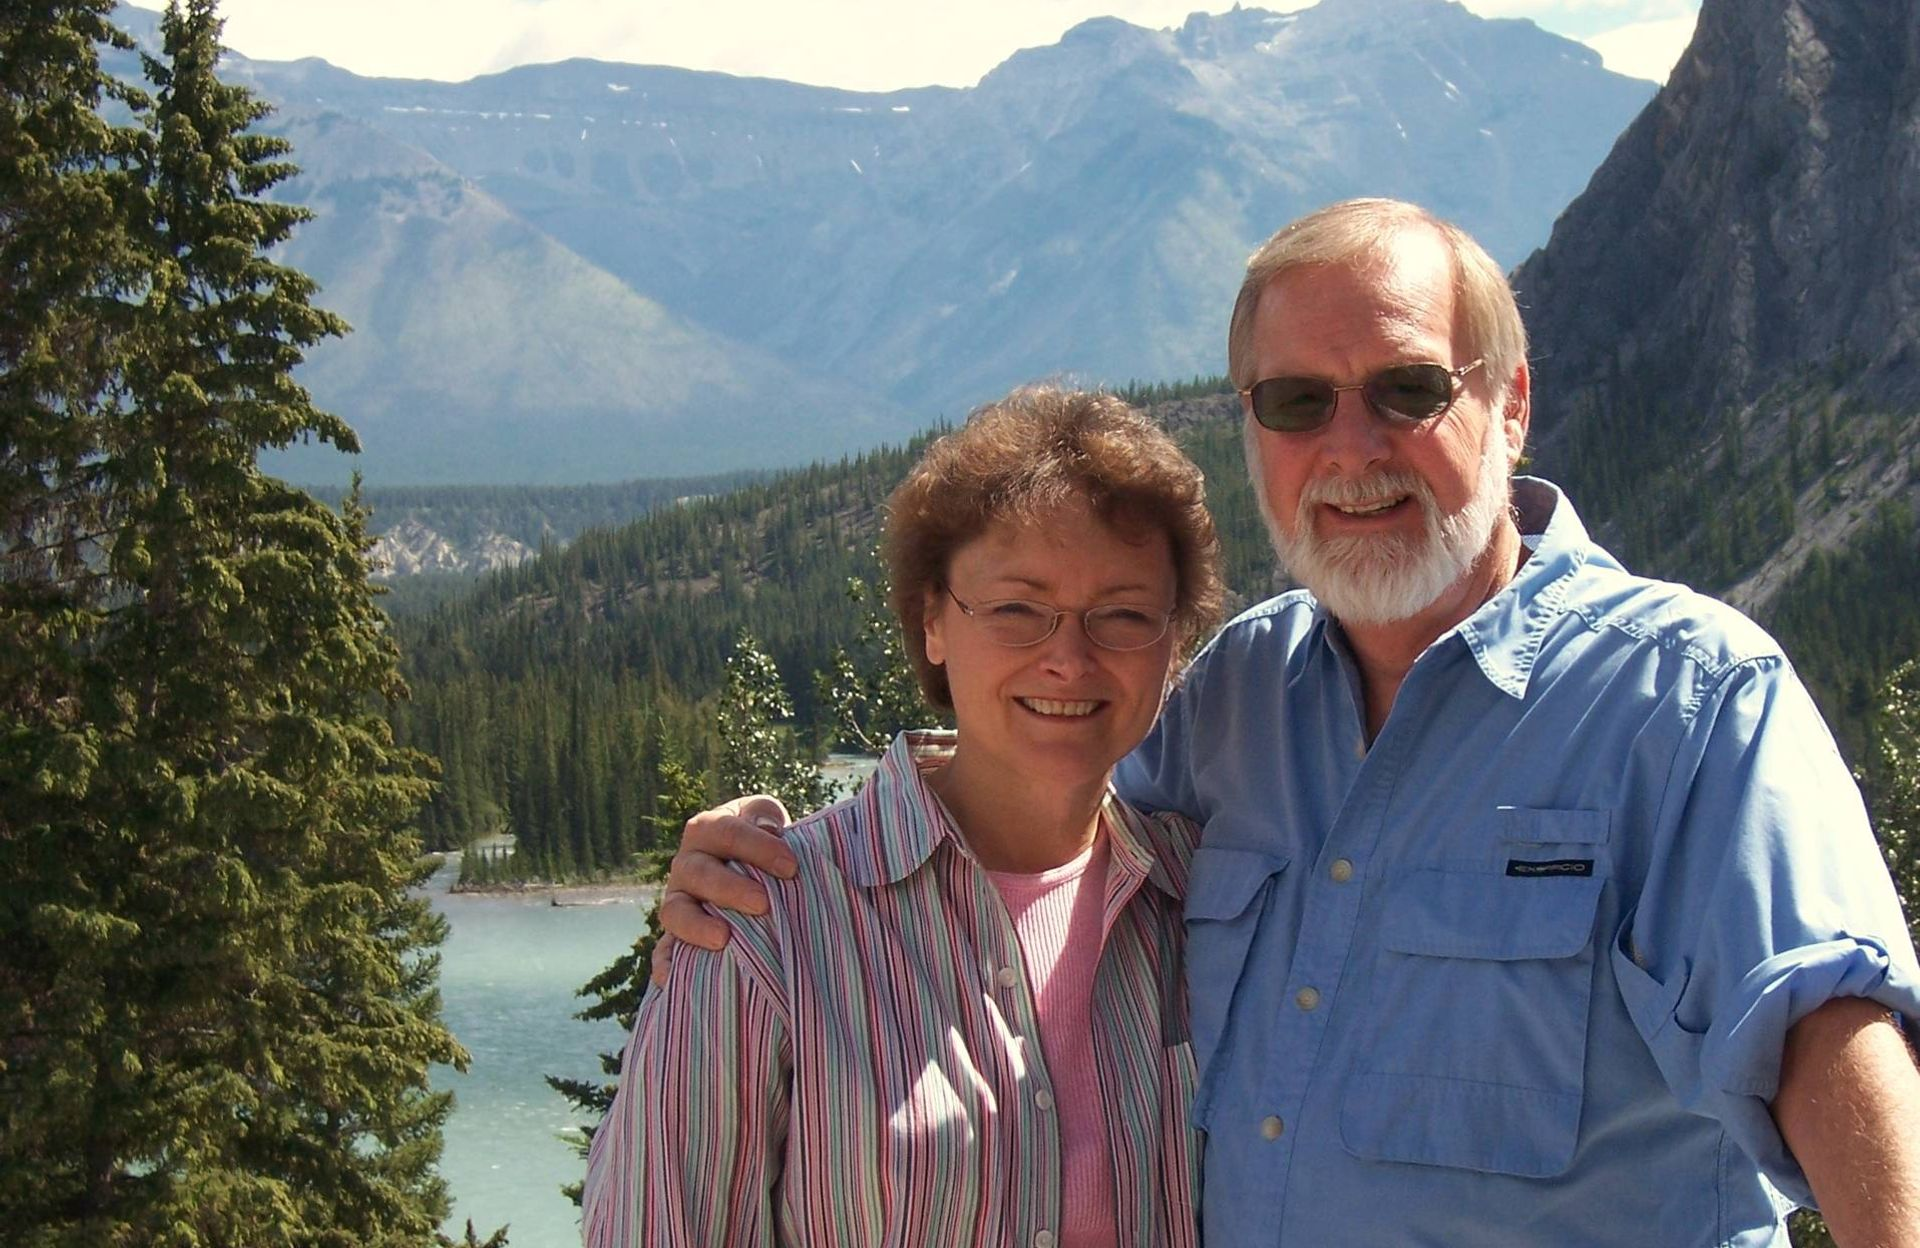 David and Linda stand in front of a picturesque scene of a lake and mountains.